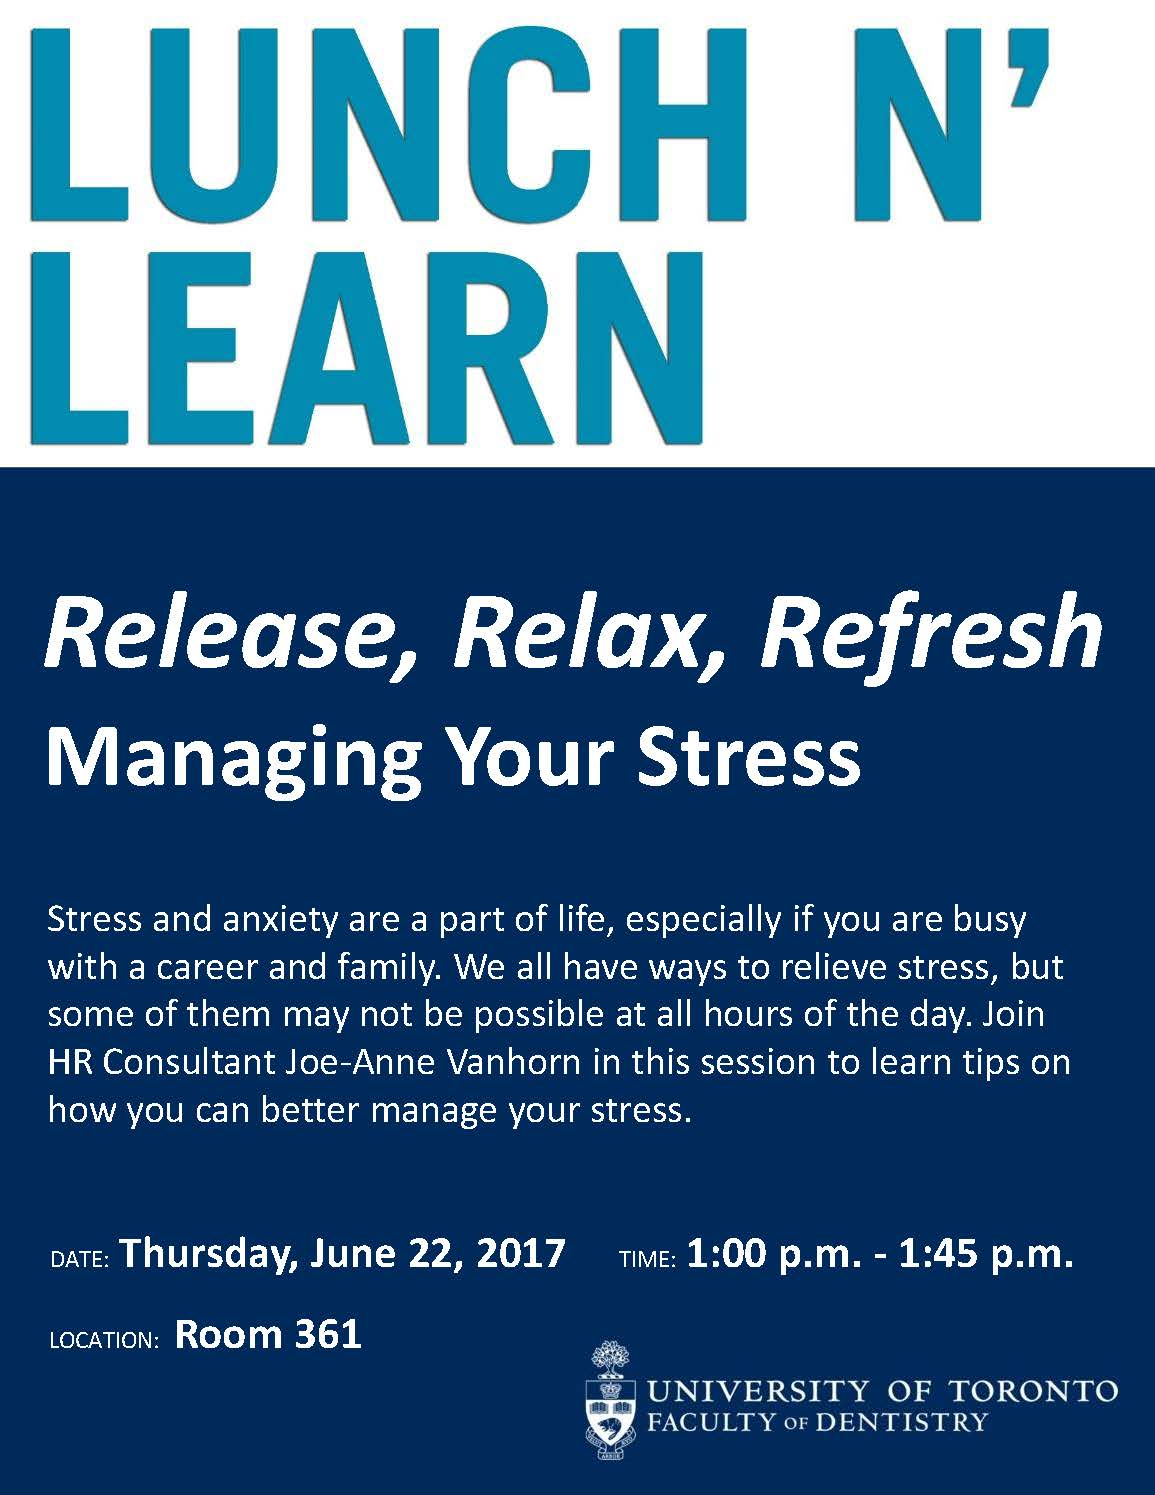 poster for stress management session